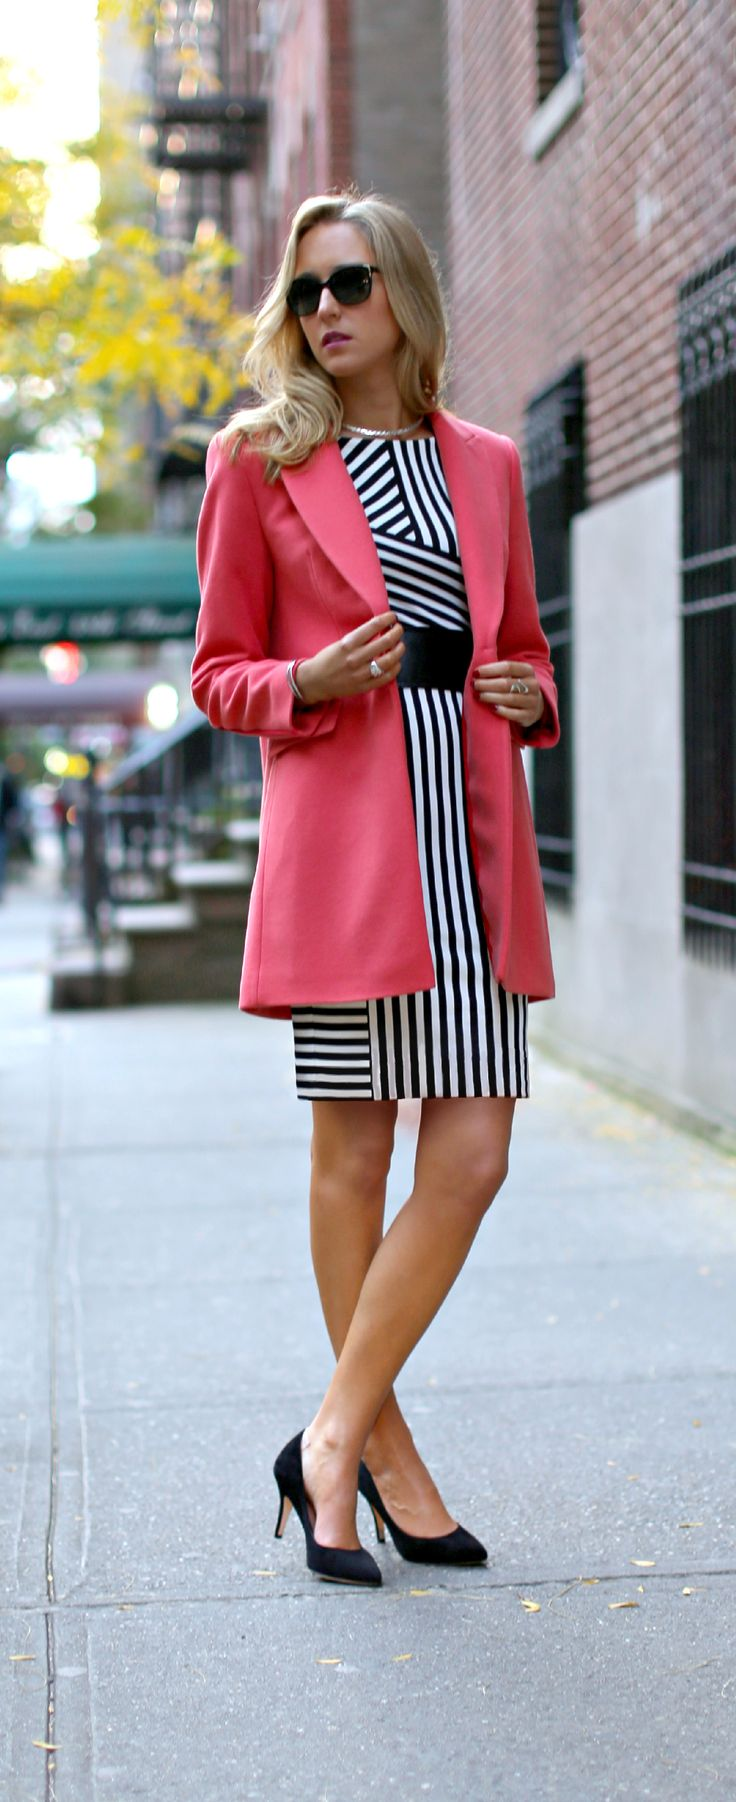 Pink coat with black white striped sheath dress and for Jewelry to wear with coral dress